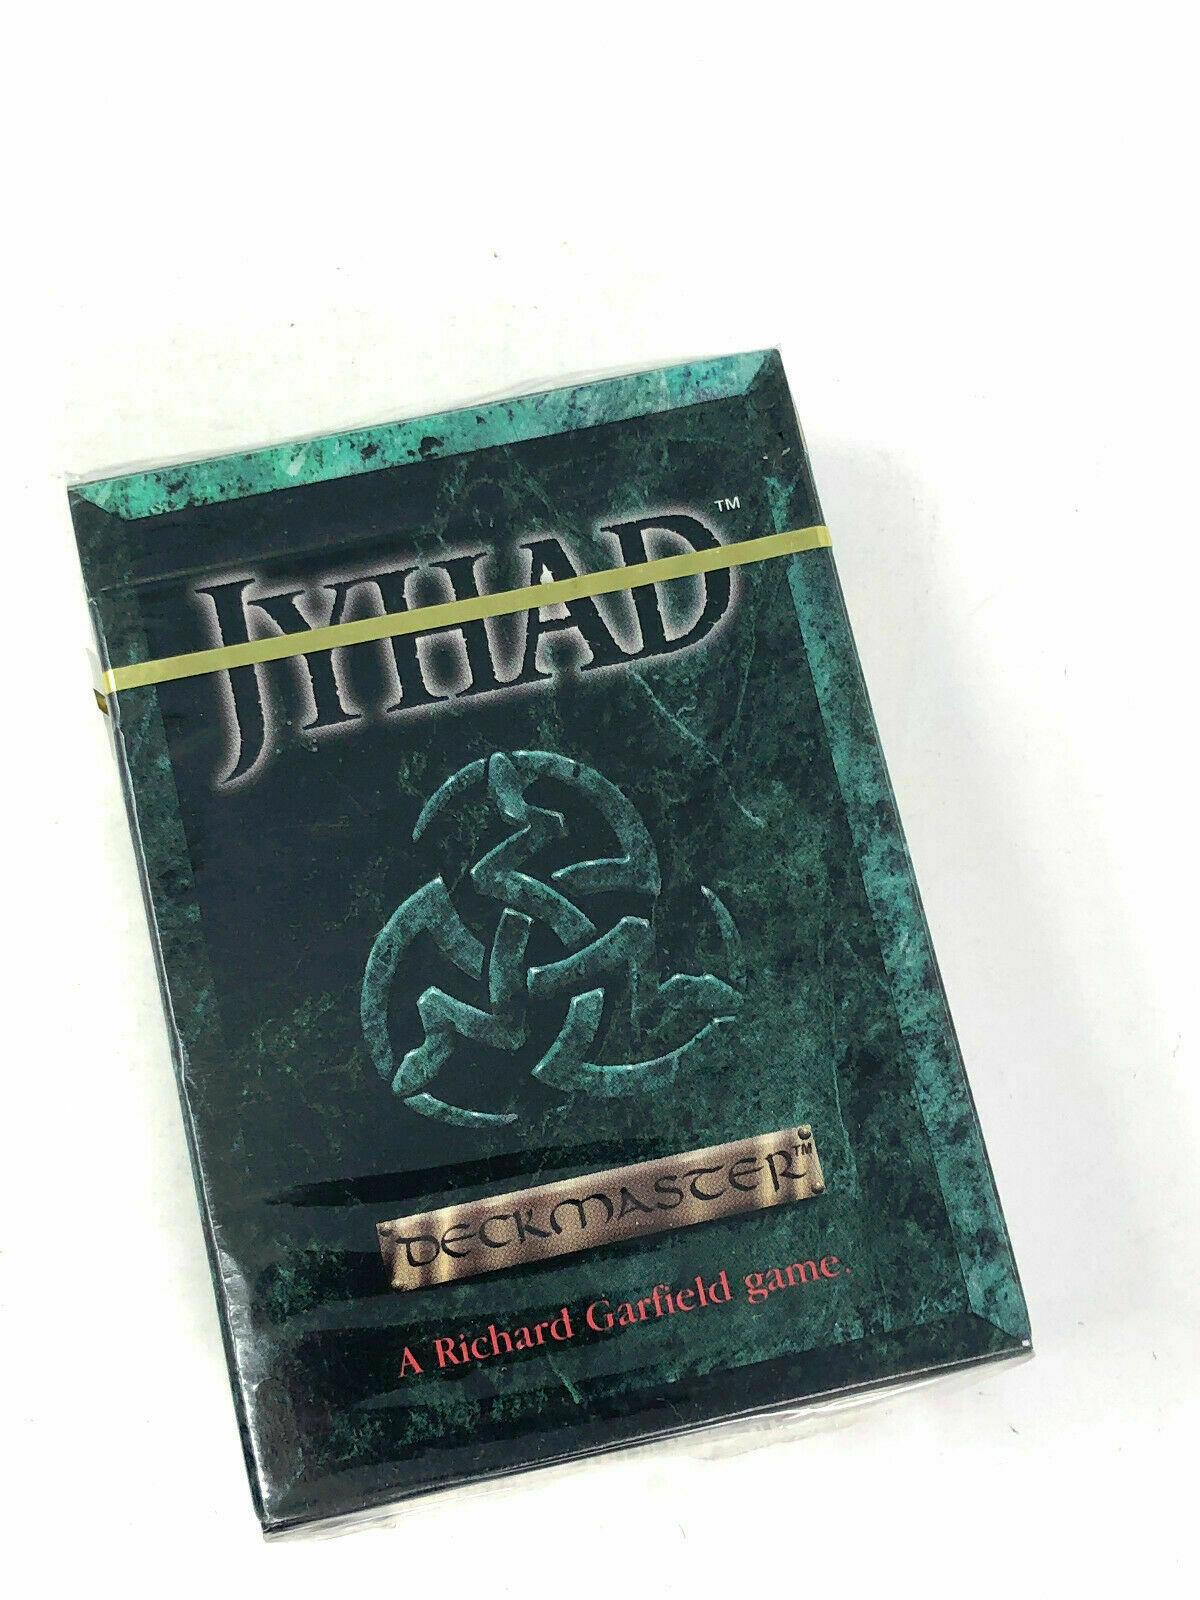 Vampire the Masquerade - Jyhad Starter Deck (Sealed) - OOP (1994) - WOD - $45.00